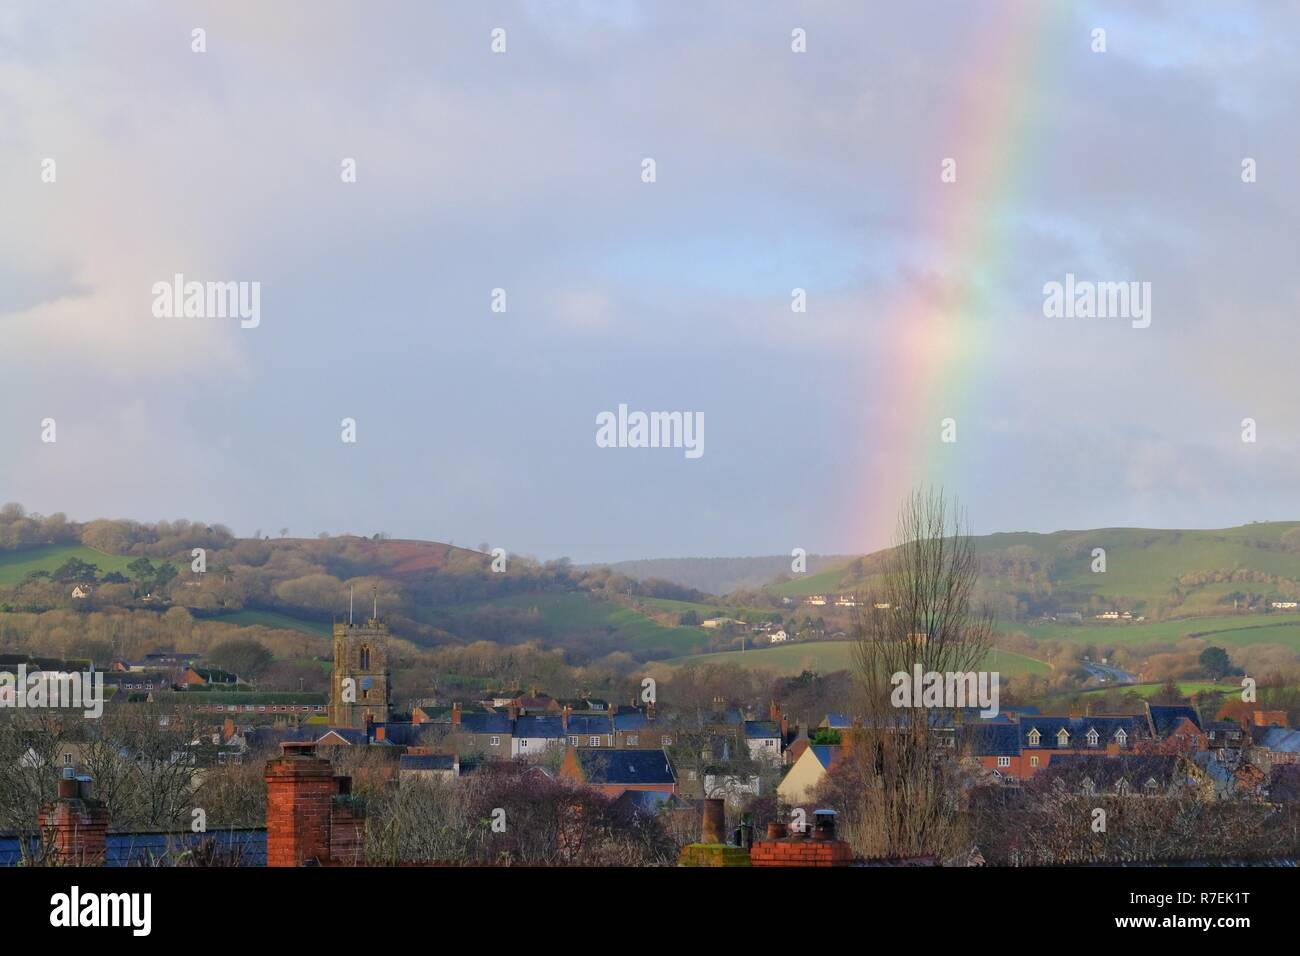 Dorset, UK. 9th Dec 2018. A rainbow appears overBridport town in Dorset as the heavy rain of the past two days begins to clear. Credit: Tom Corban/Alamy Live News - Stock Image